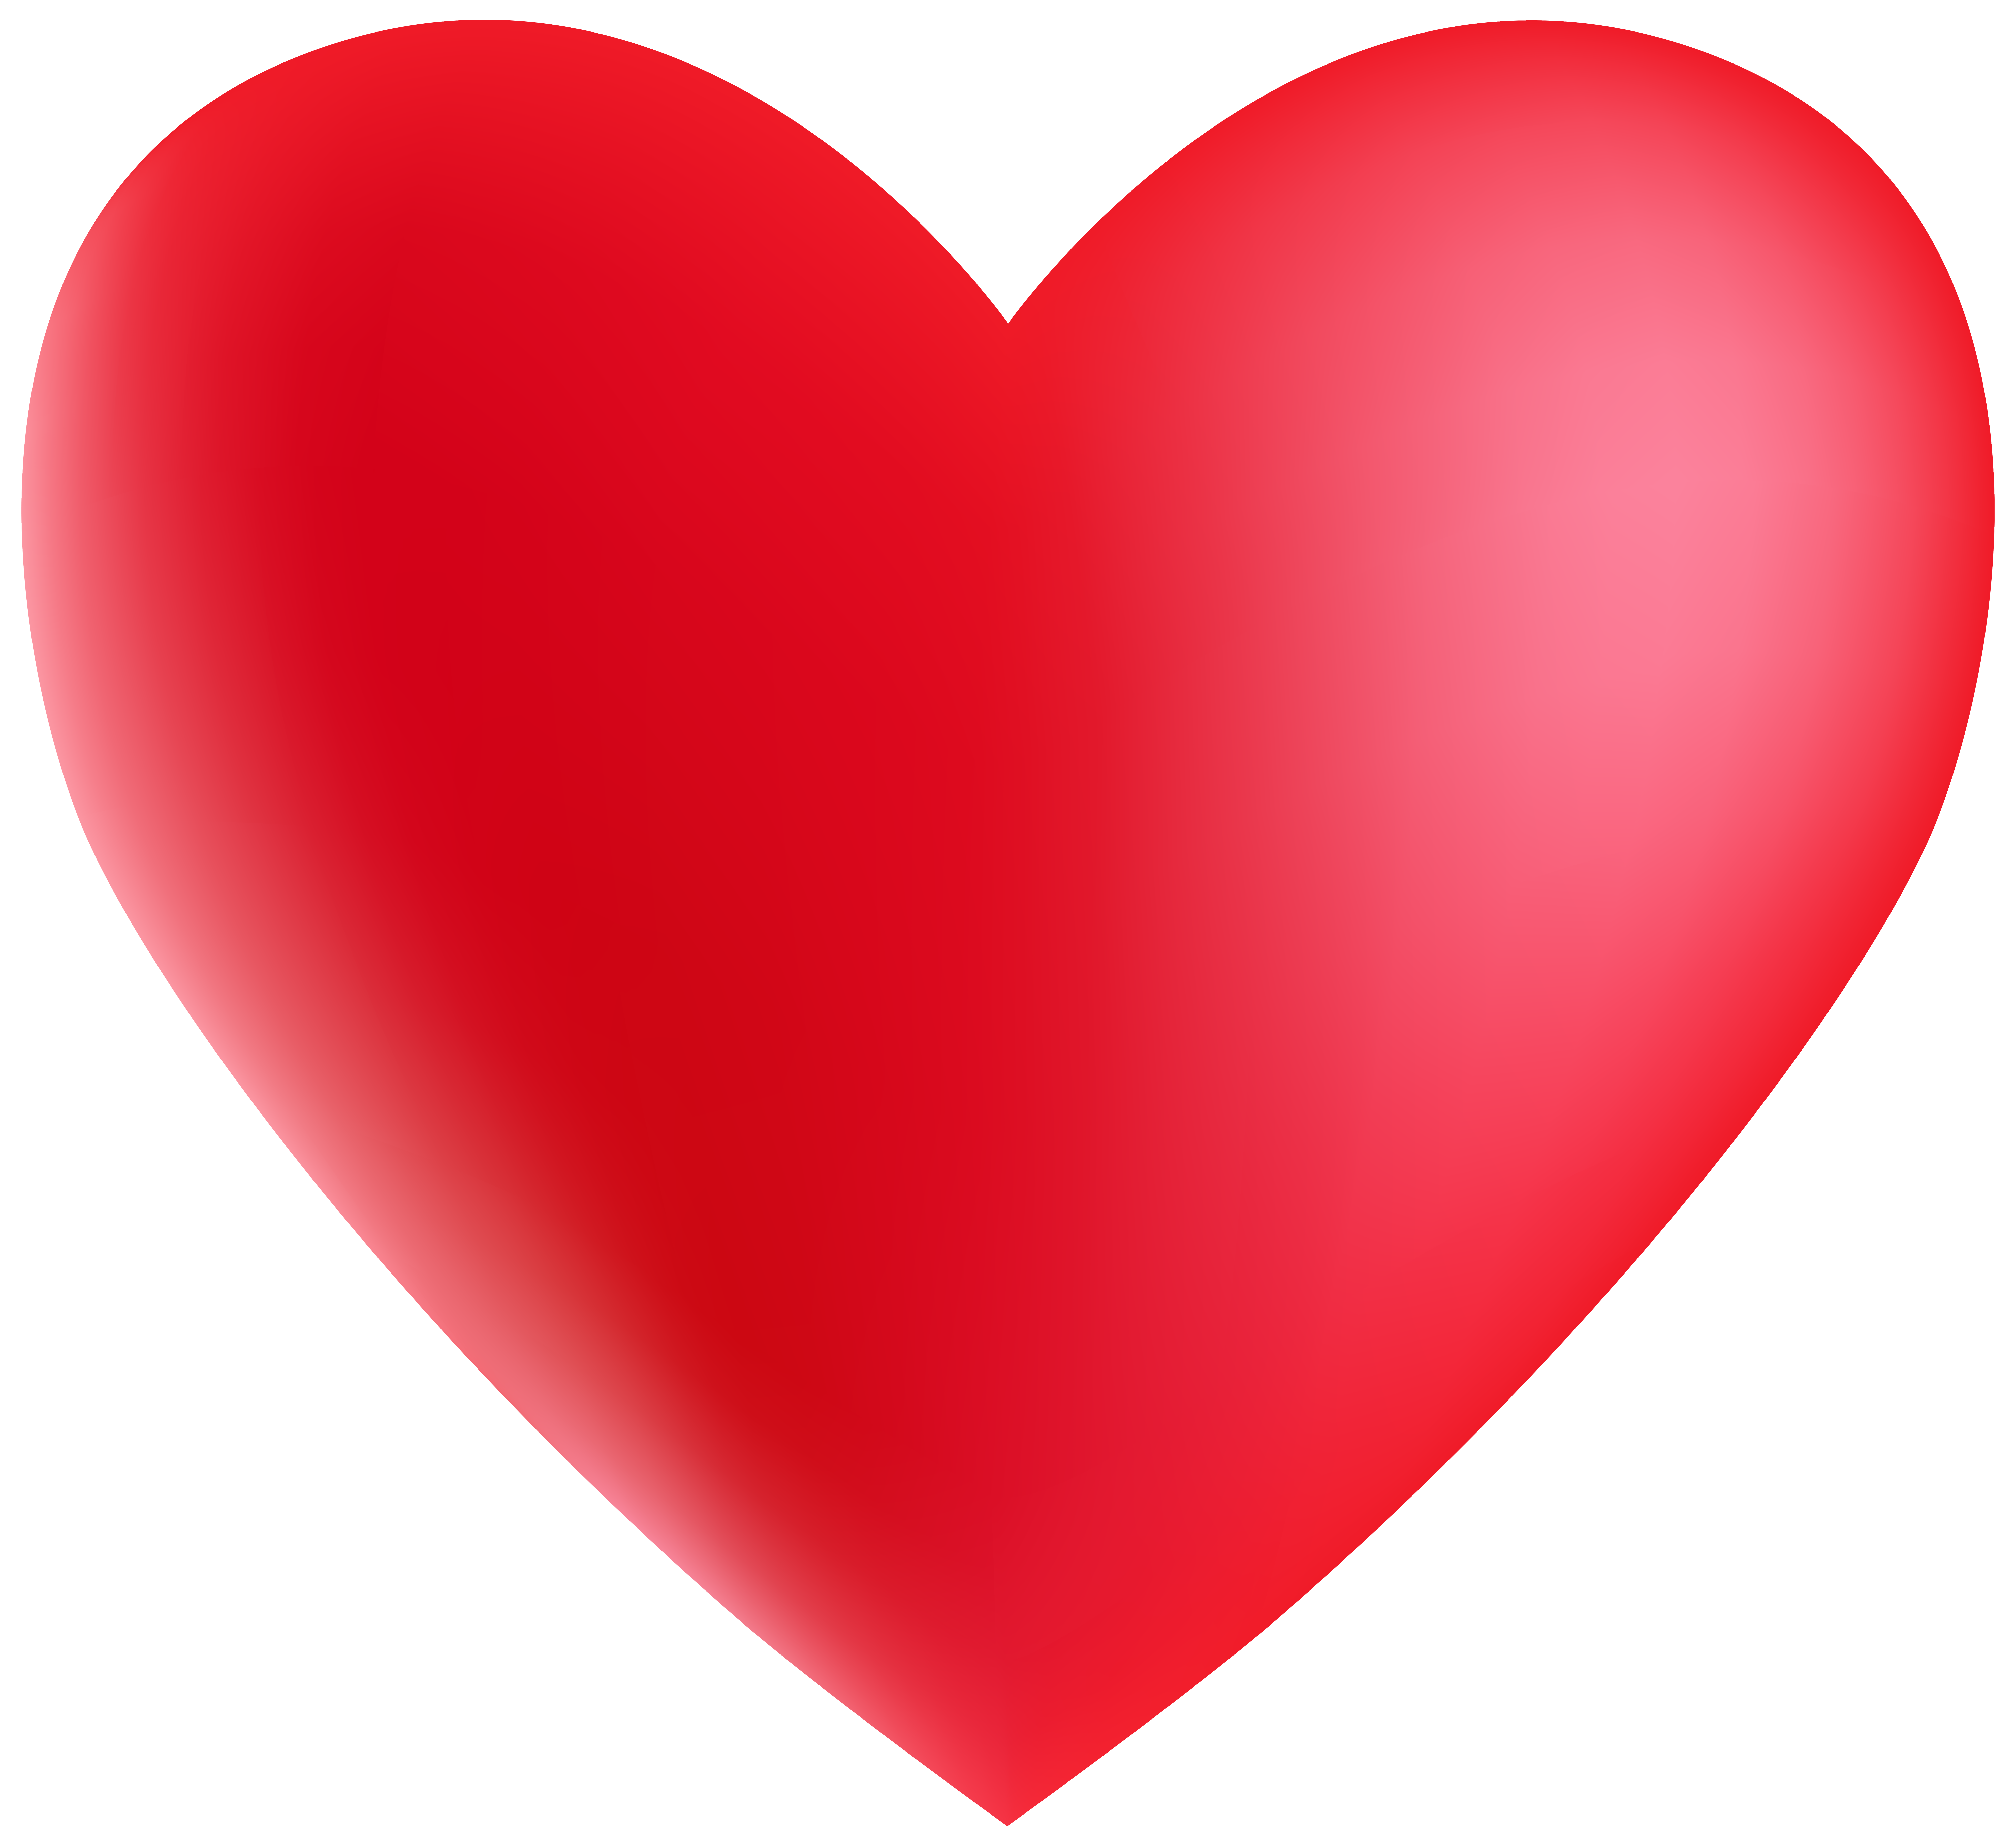 Heart png image gallery. Hearts clipart soccer